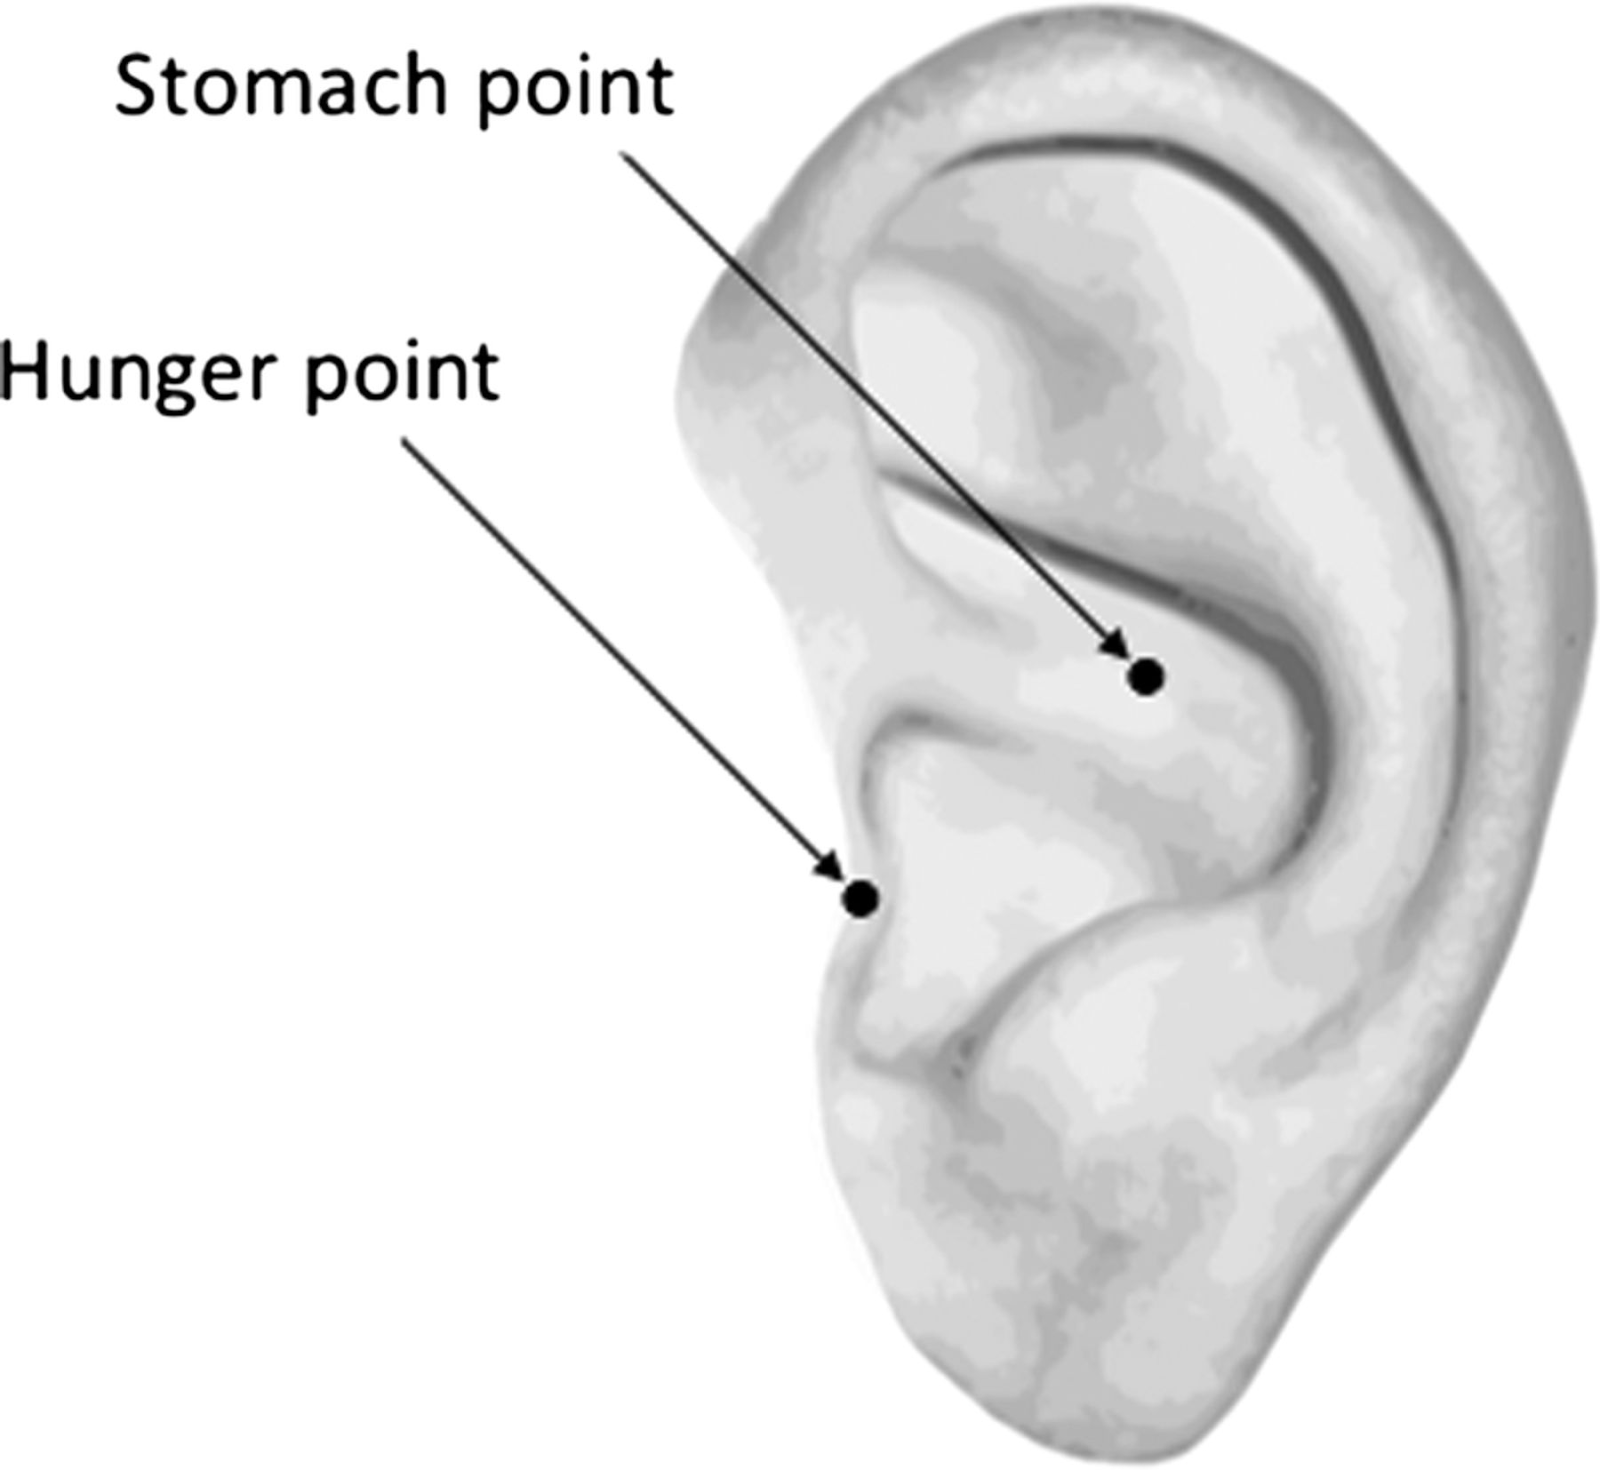 Ear Acupuncture Stomach and Hunger Points